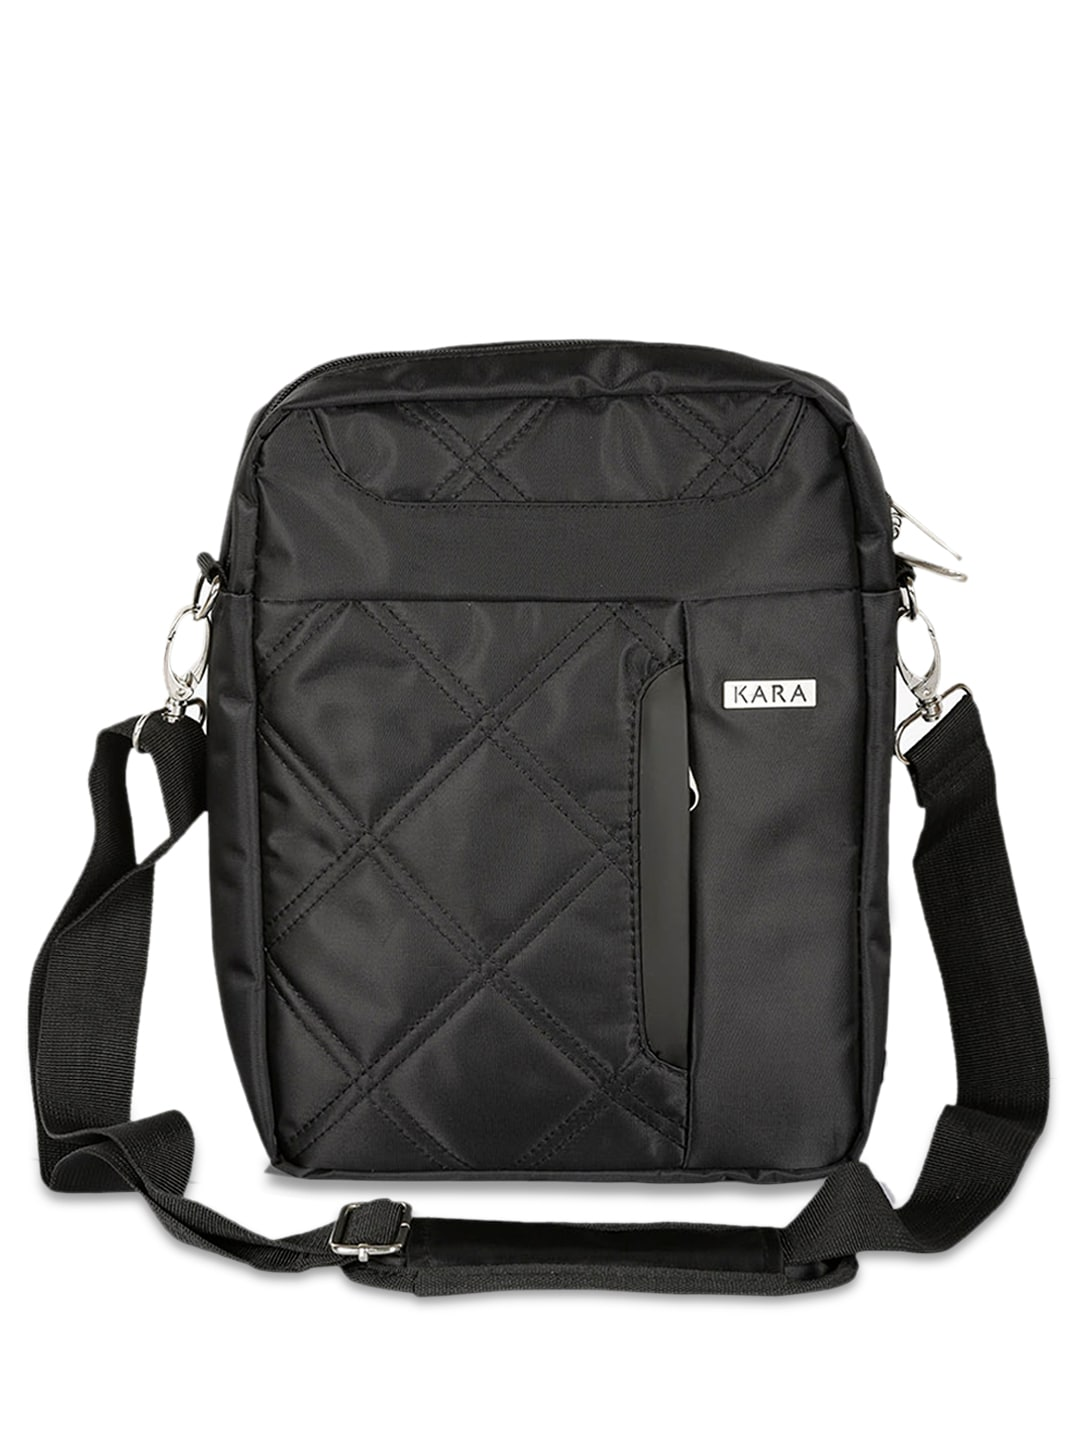 Feggi Backpacks Bags Messenger - Buy Feggi Backpacks Bags Messenger online  in India b5f627e4cf5f3